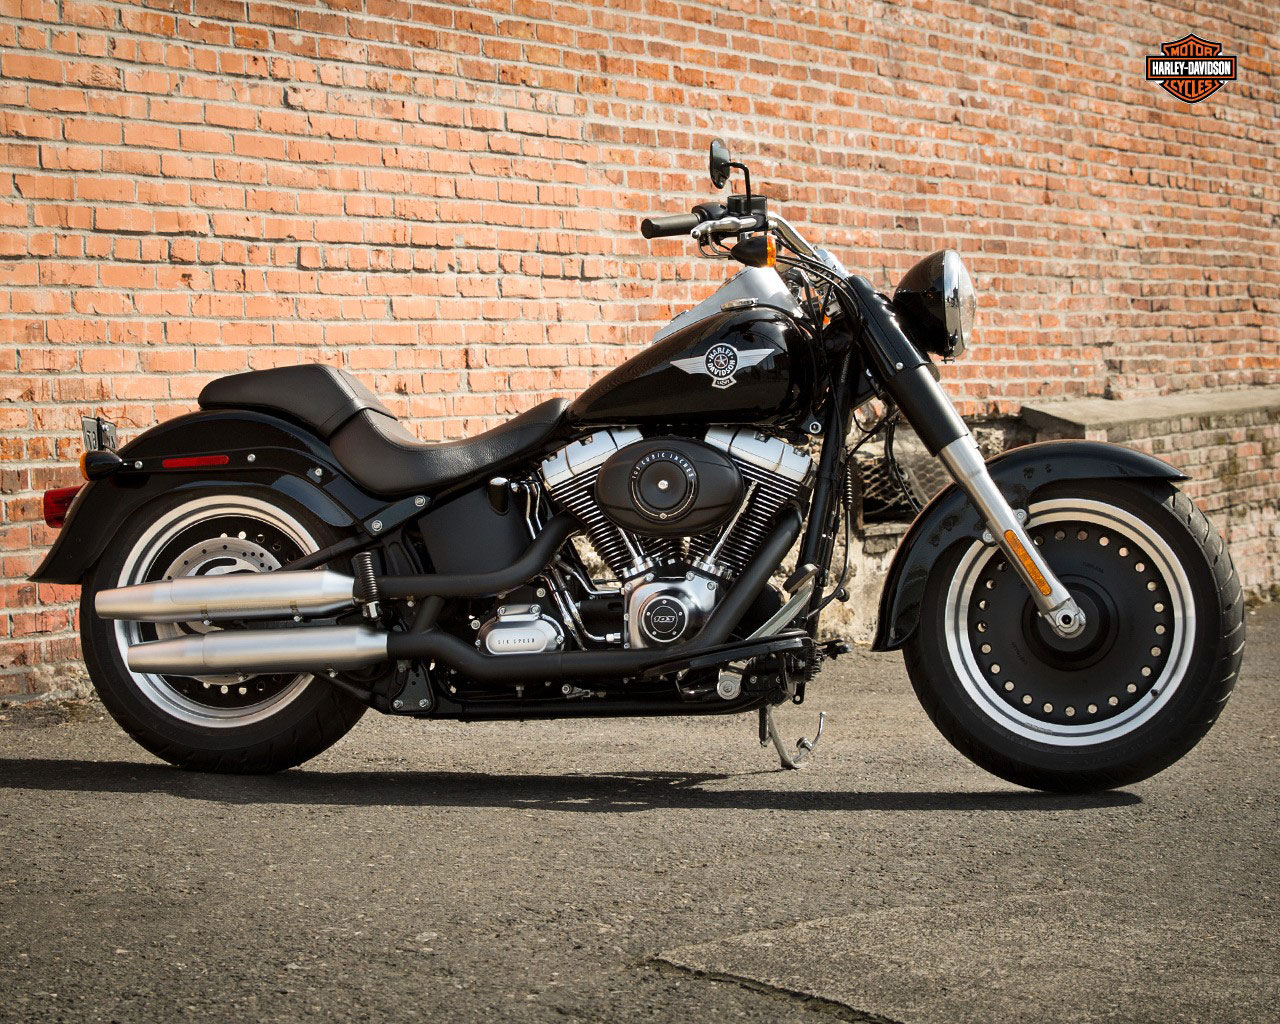 pc wallpaper Harley-Davidson FLSTFB Fat Boy Lo 2015